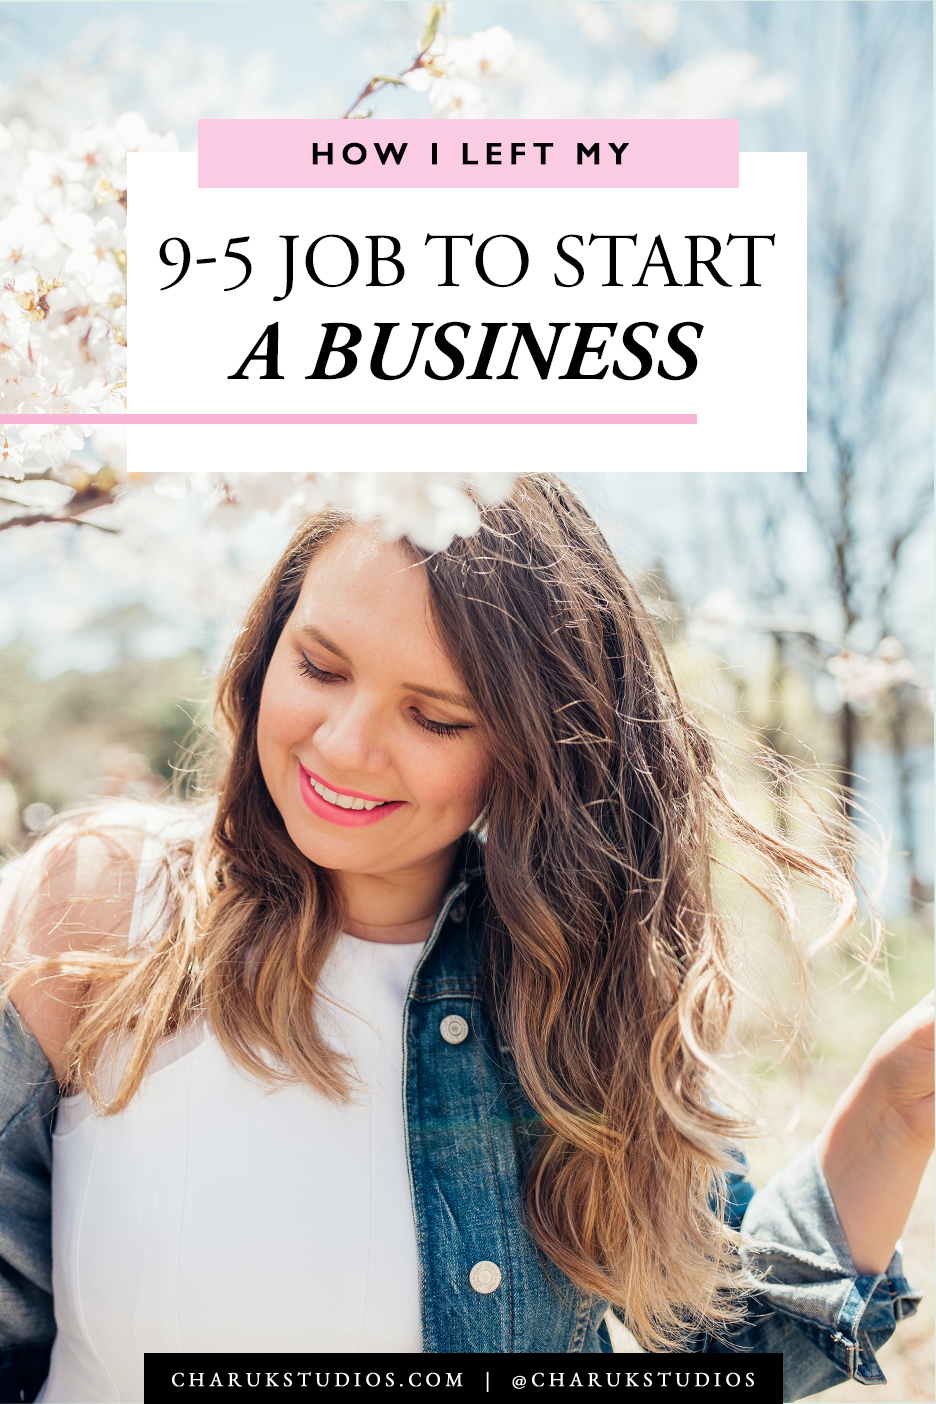 How I Left My 9-5 Job to Start a Business by Charuk Studios